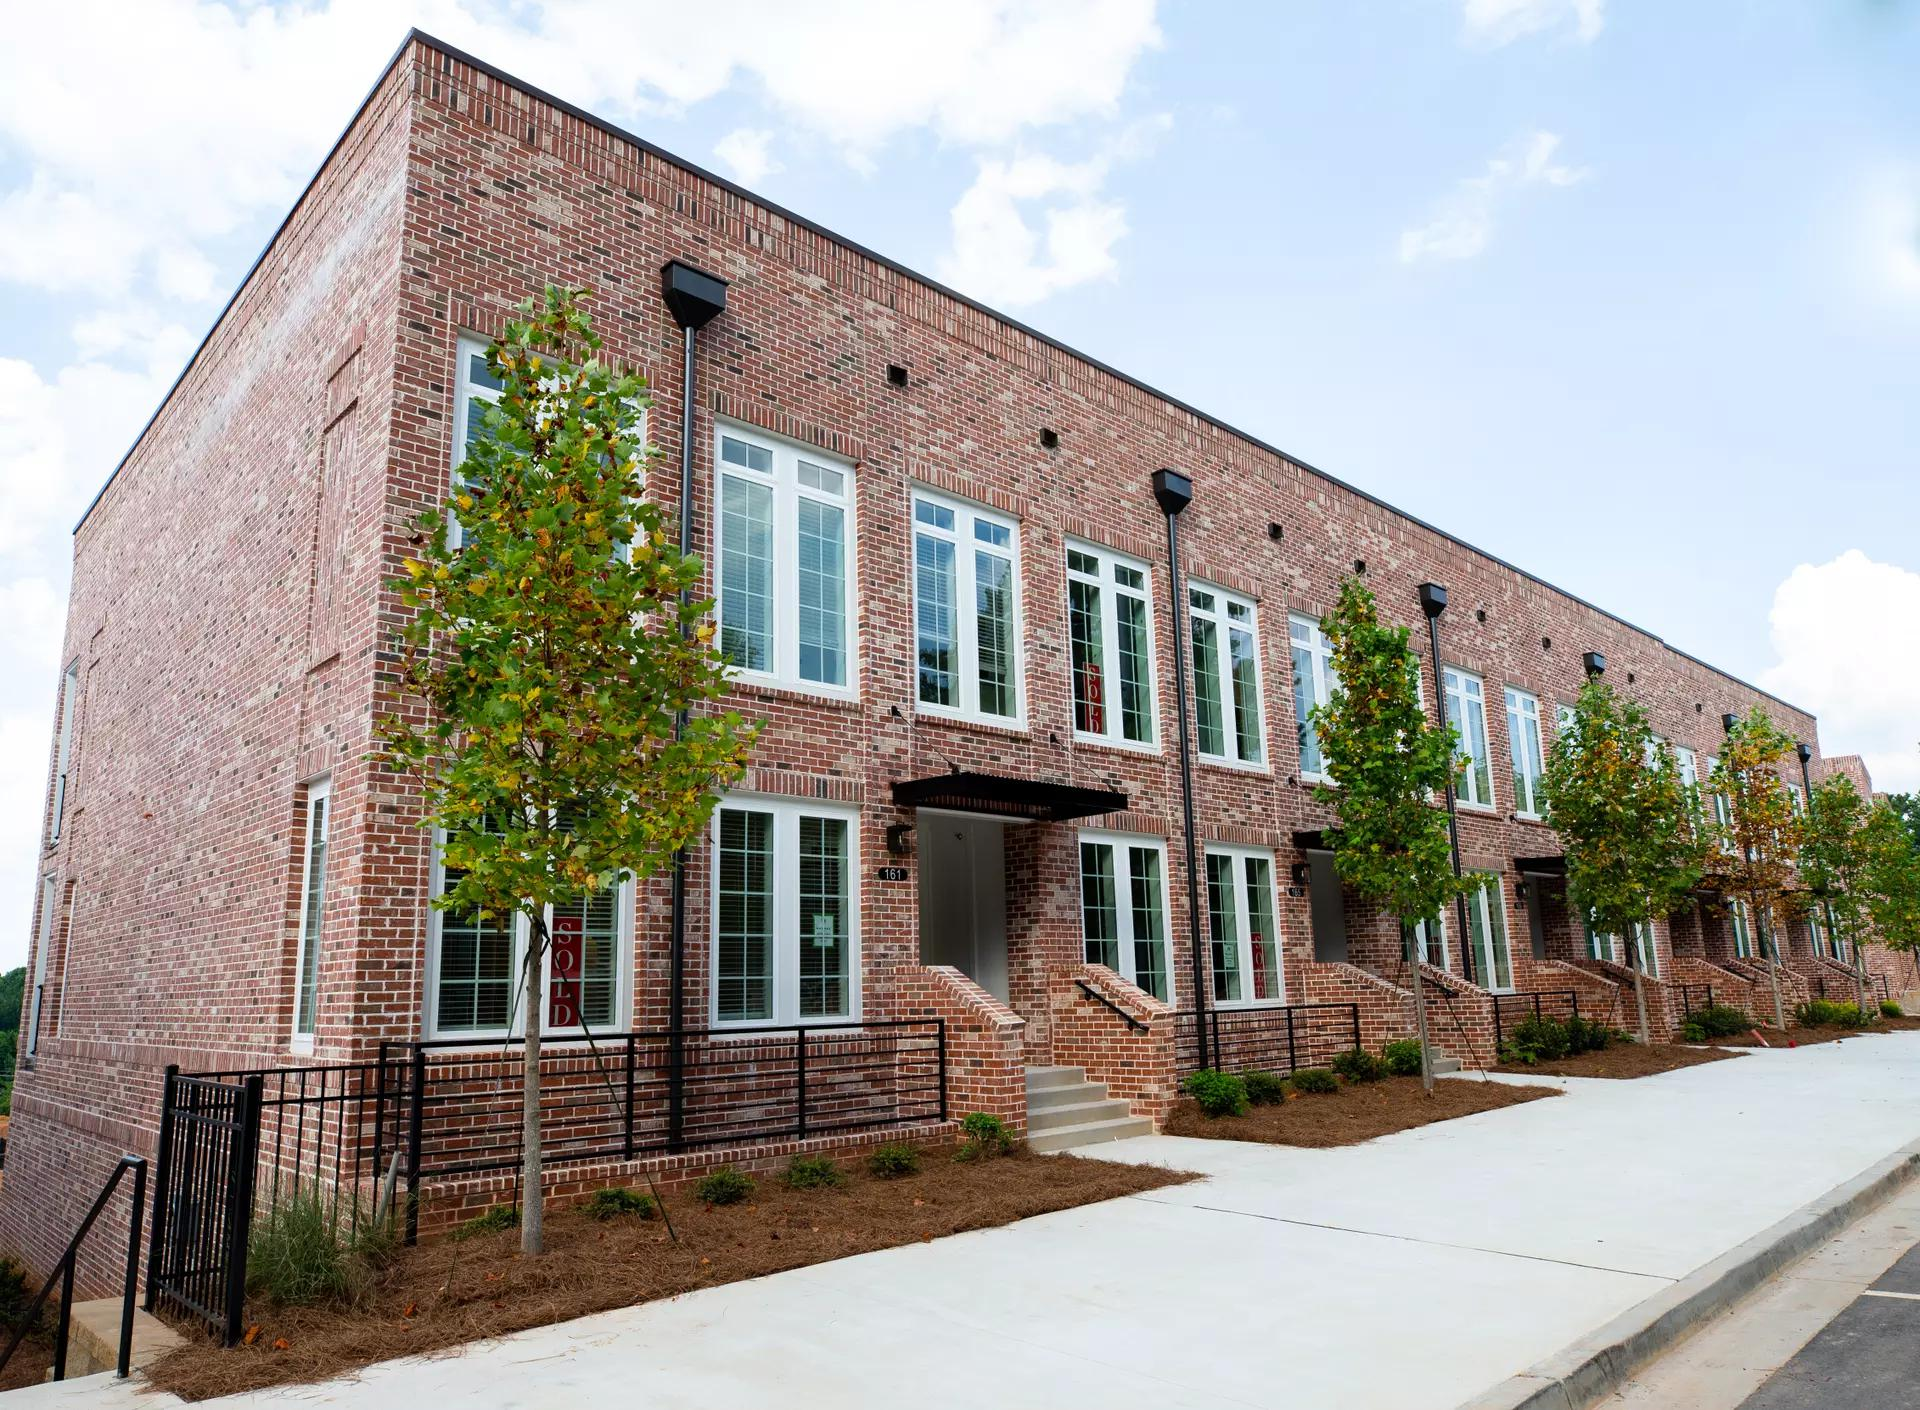 Live Walking Distance From New Family Activities in Alpharetta